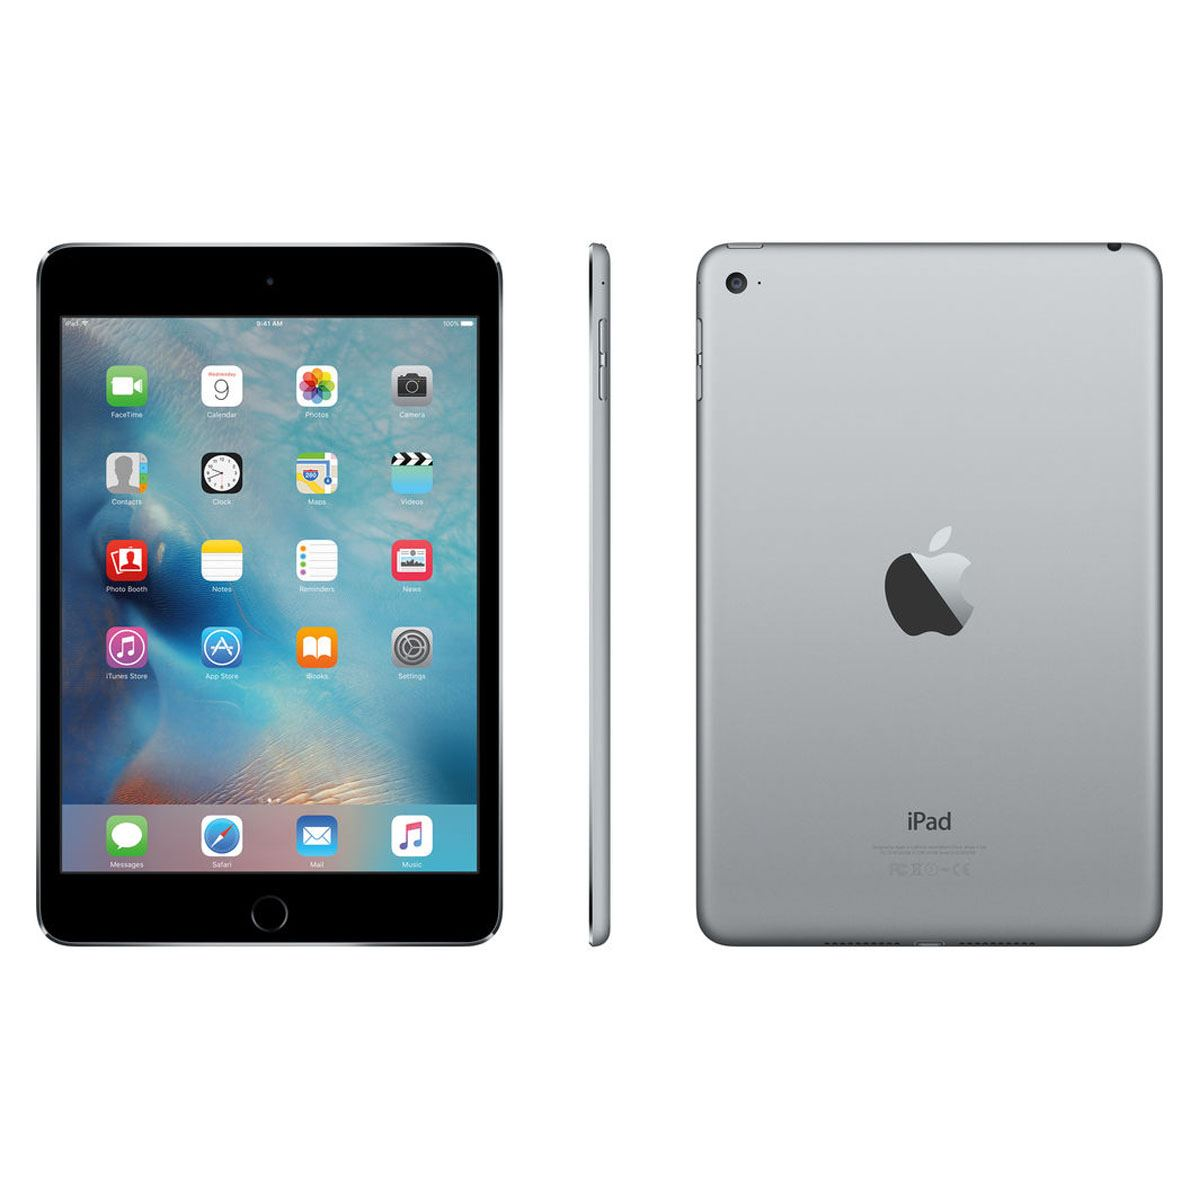 Ipad mini 4 wi-fi 128gb space gray  - Sanborns